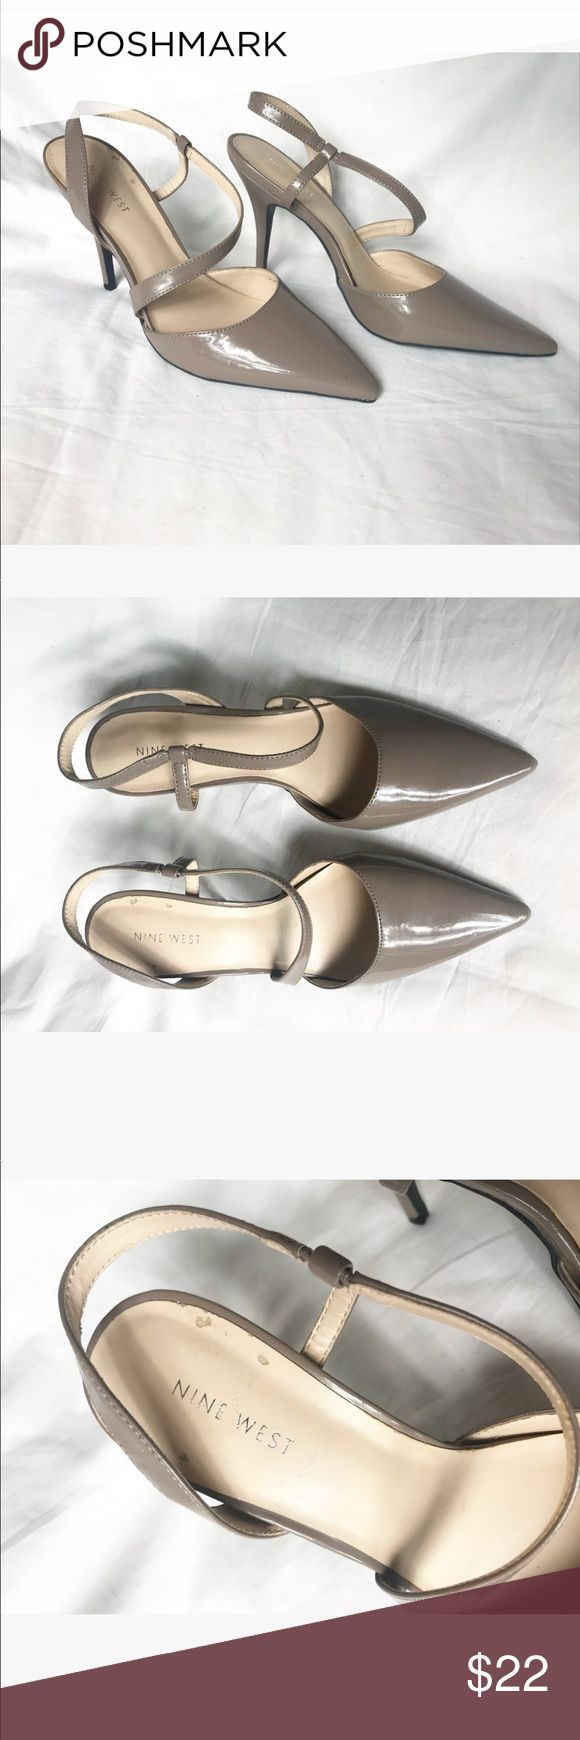 Nine West Capital Biege High Heels Size 9 Beautiful Nine West heels  Great condition only one flaw please see photo for detail Nine West Shoes Heels